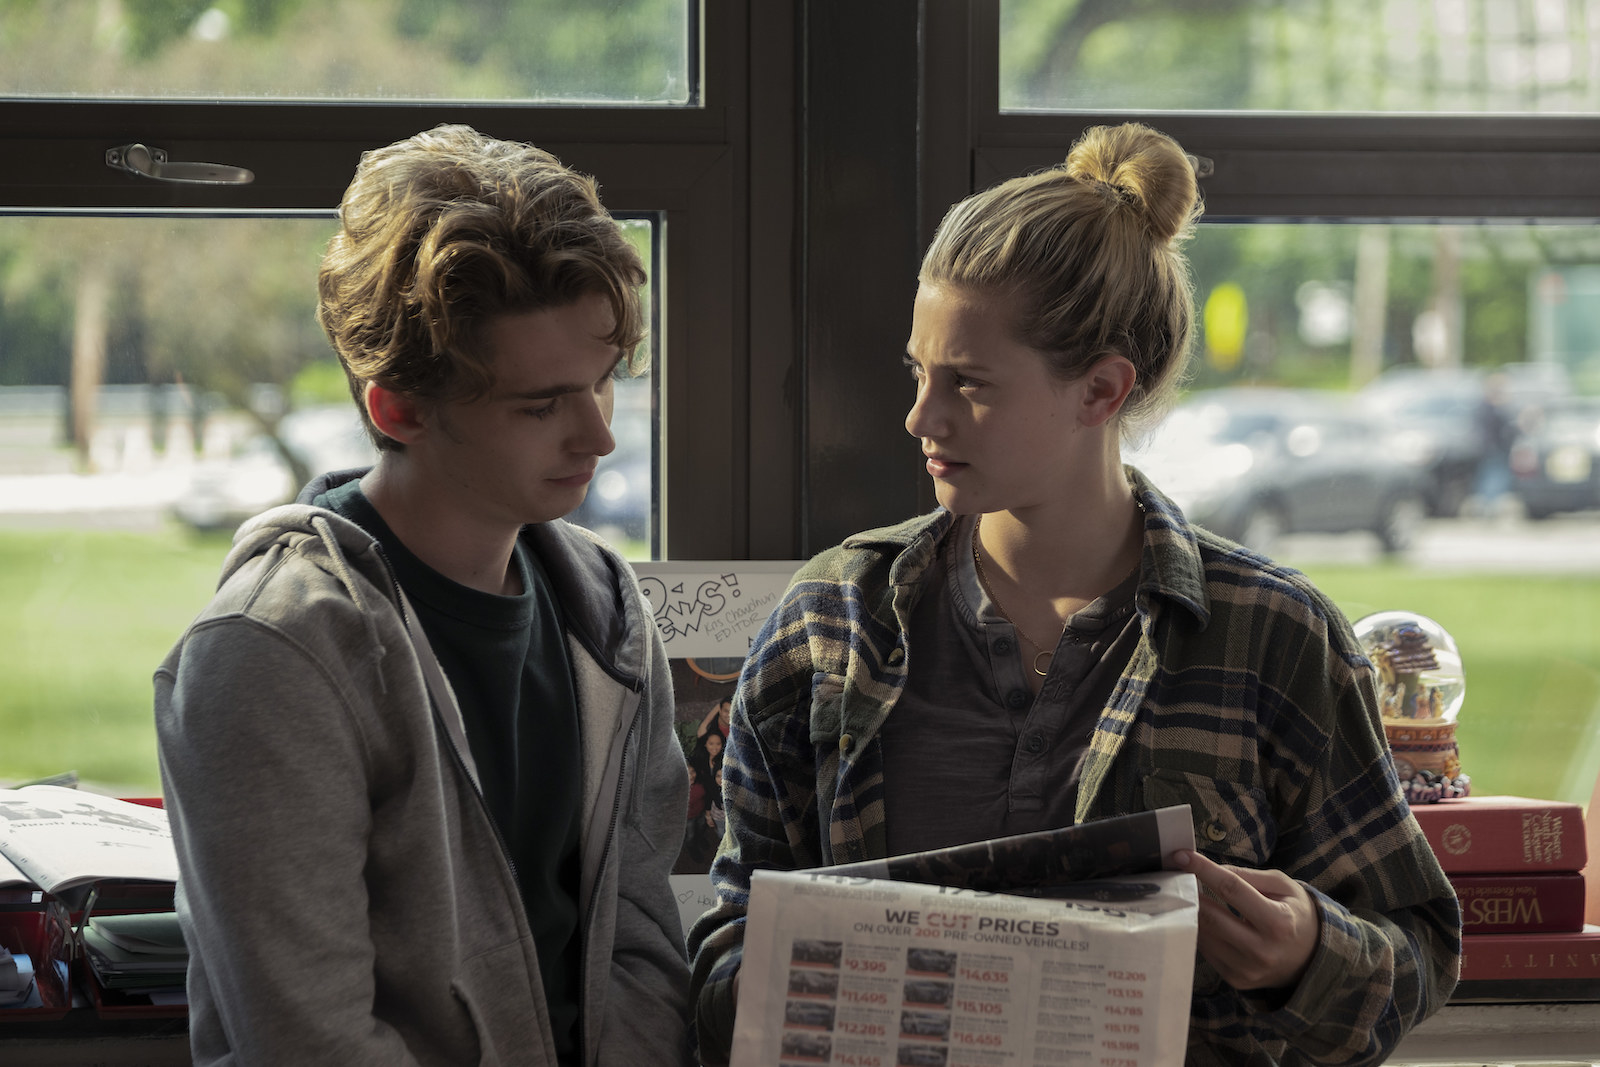 Lili Reinhart as Grace Town and Austin Abrams as Henry Page in CHEMICAL HEARTS